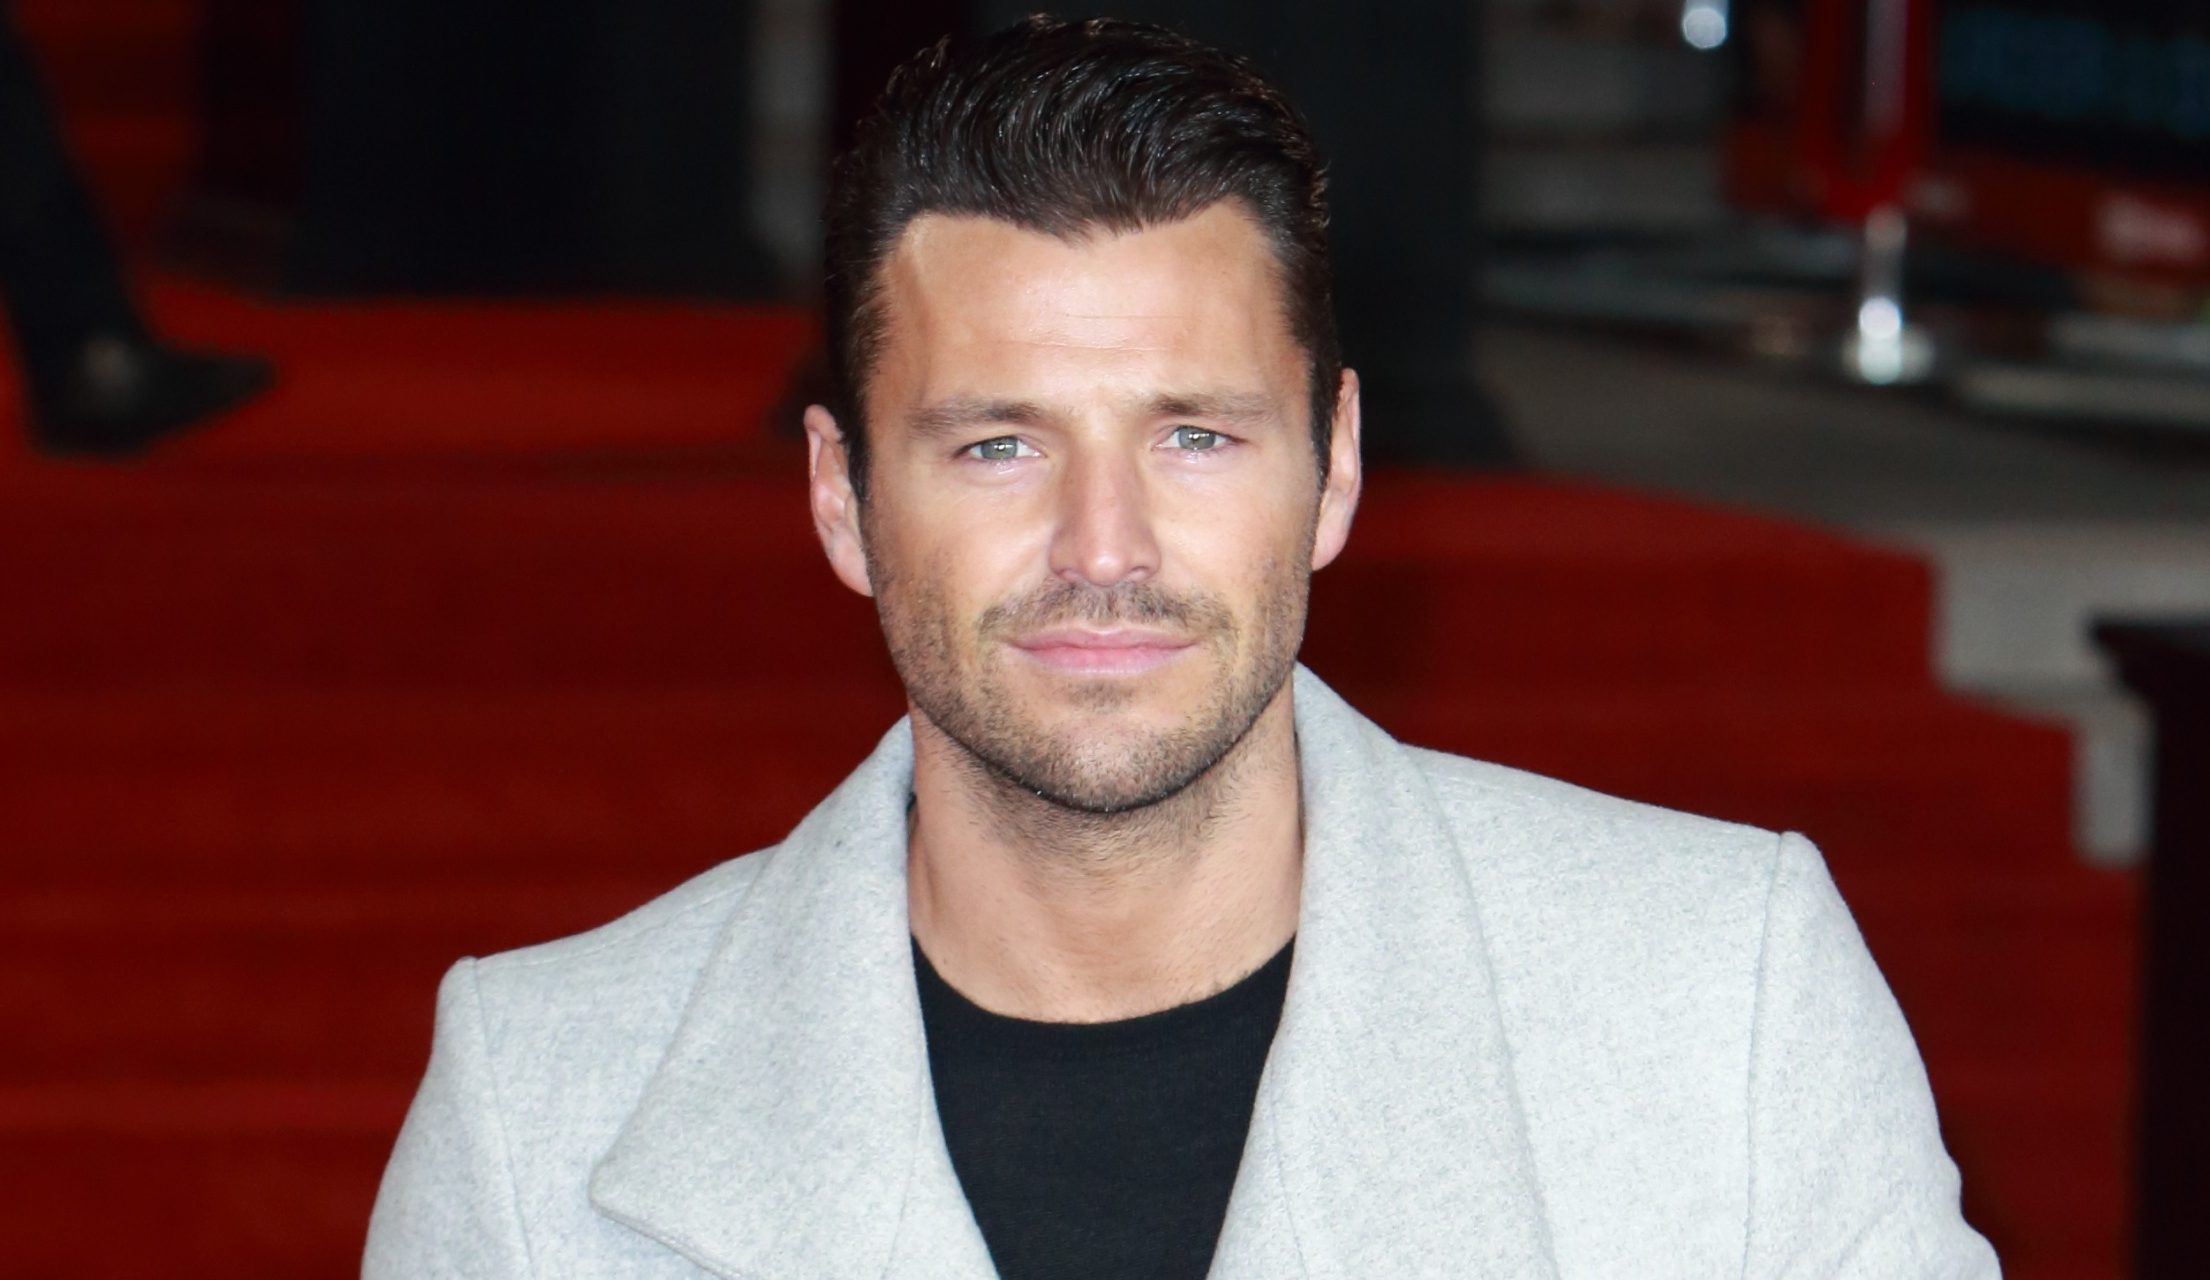 Mark Wright forced to change Instagram post after 'disrespecting' Kim Kardashian